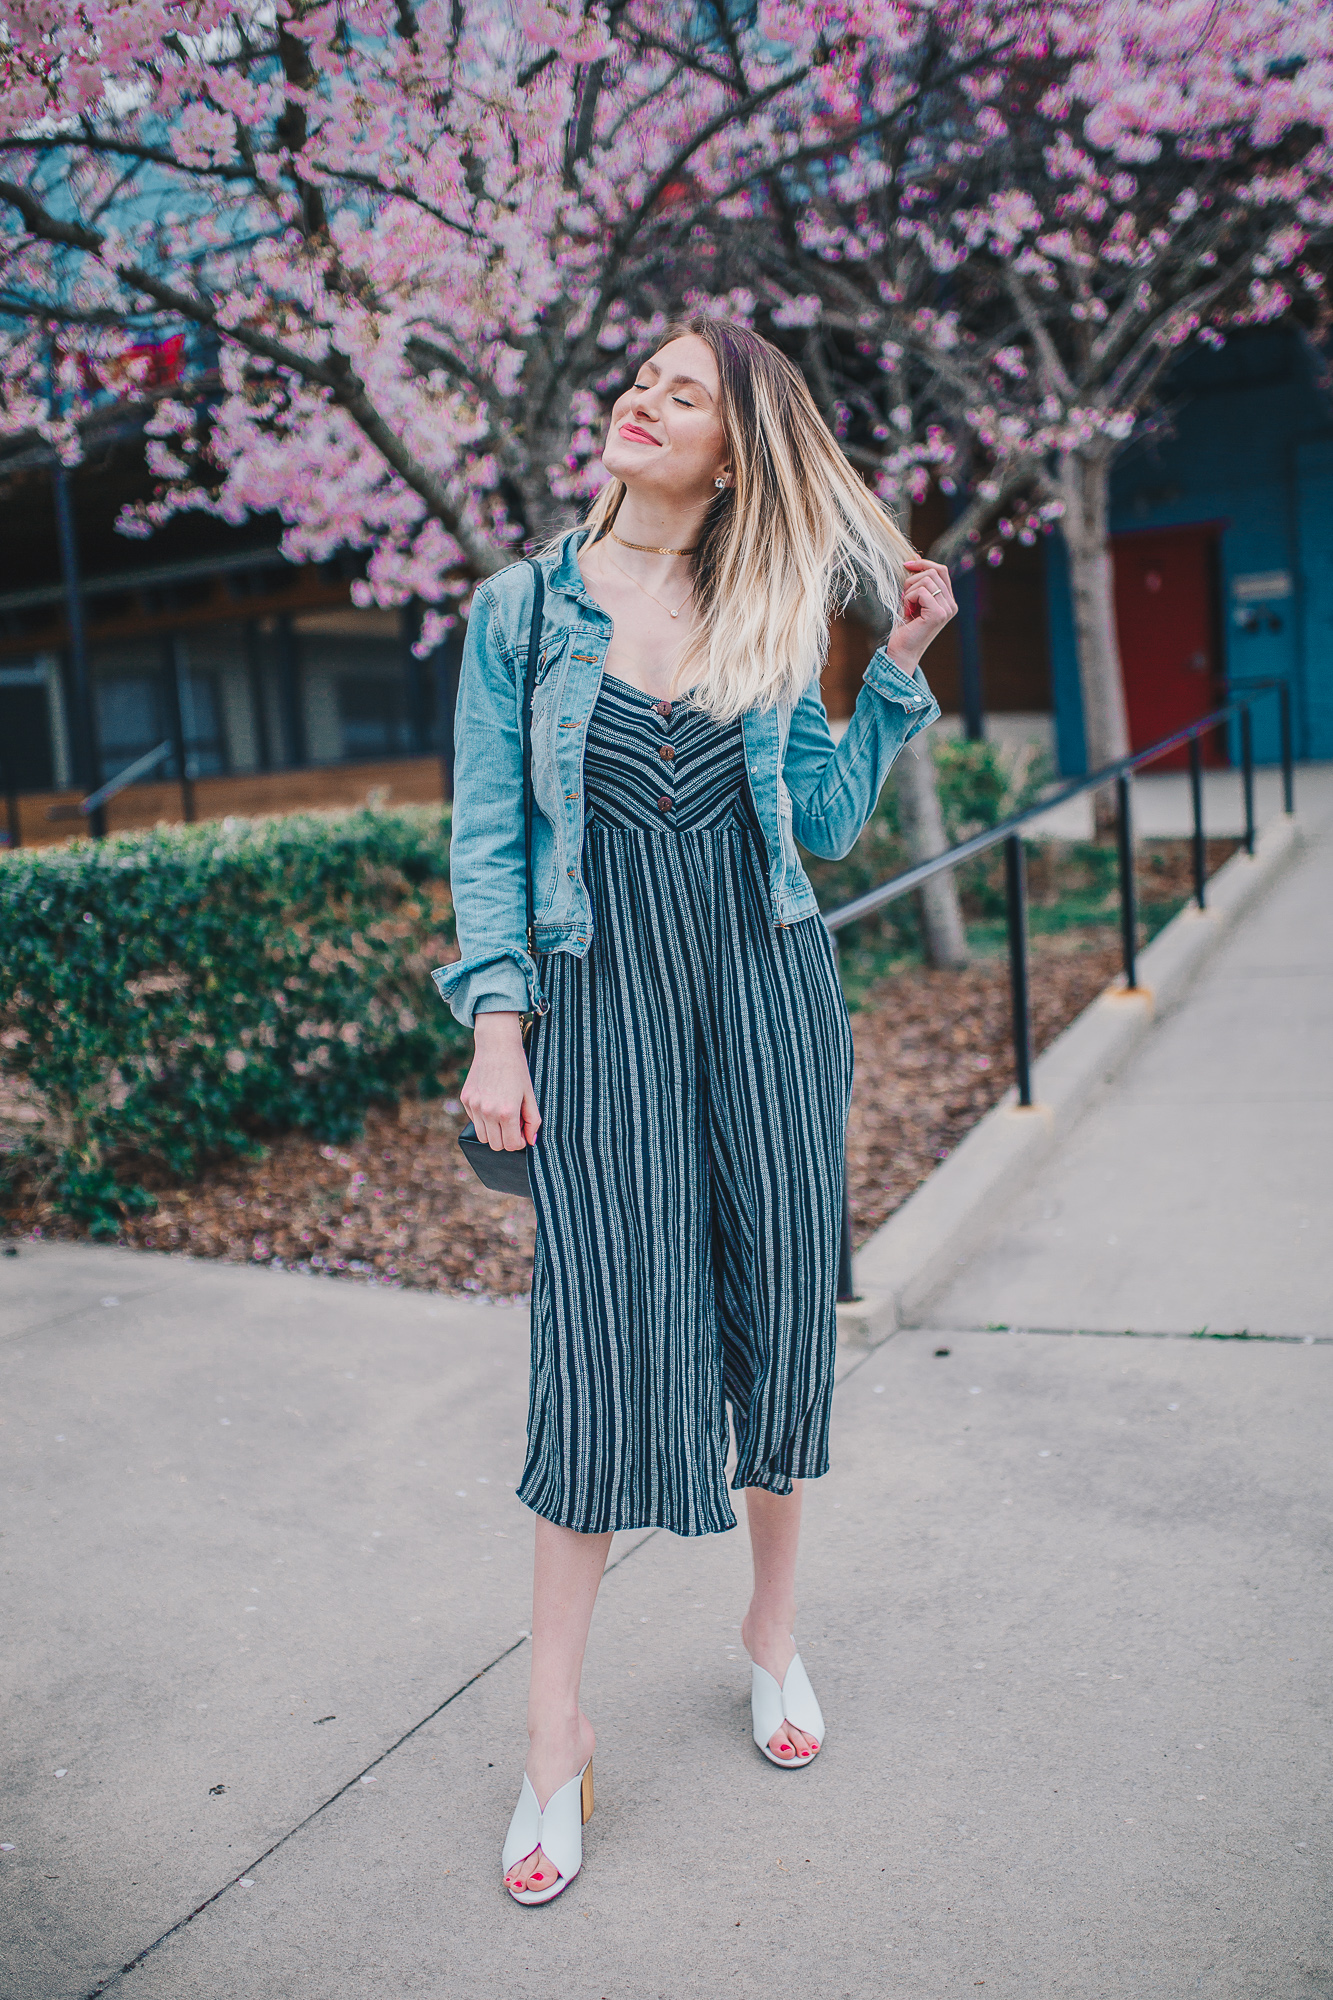 North Carolina fashion, beauty, and lifestyle blogger and Youtube Jessica Linn.